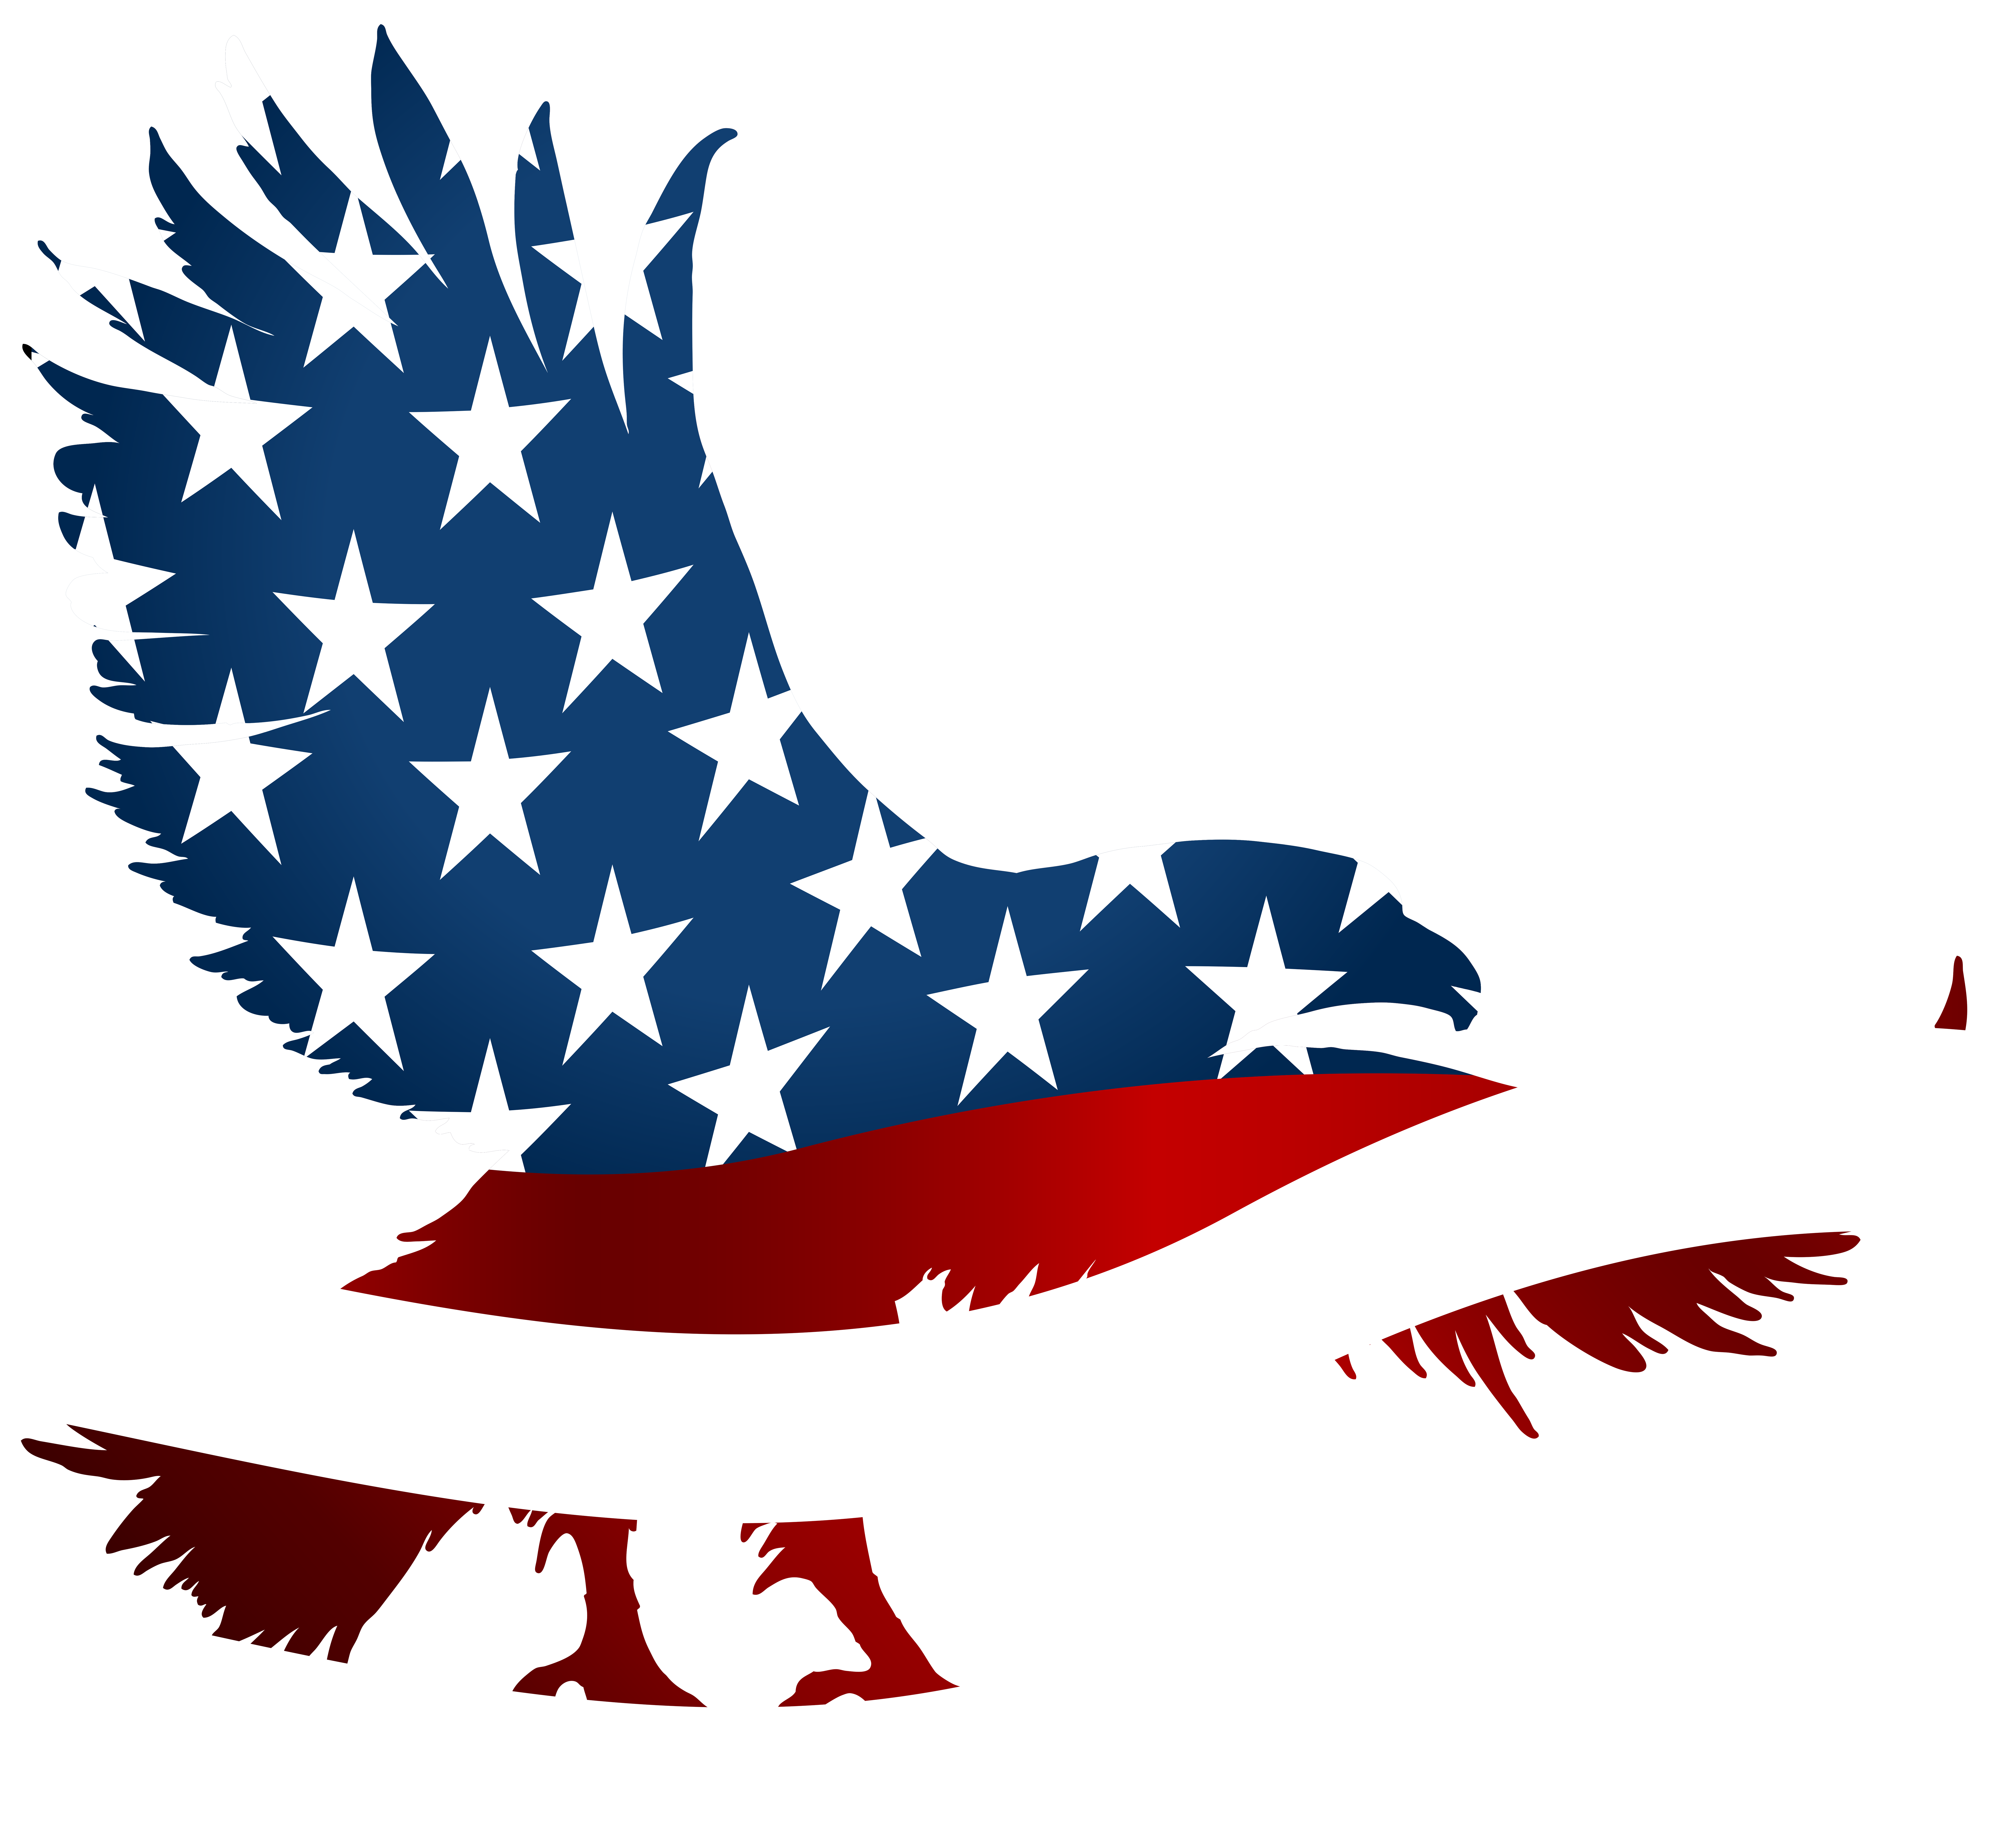 Patriotic cross clipart clip art free library 28+ Collection of Usa Eagle Clipart | High quality, free cliparts ... clip art free library